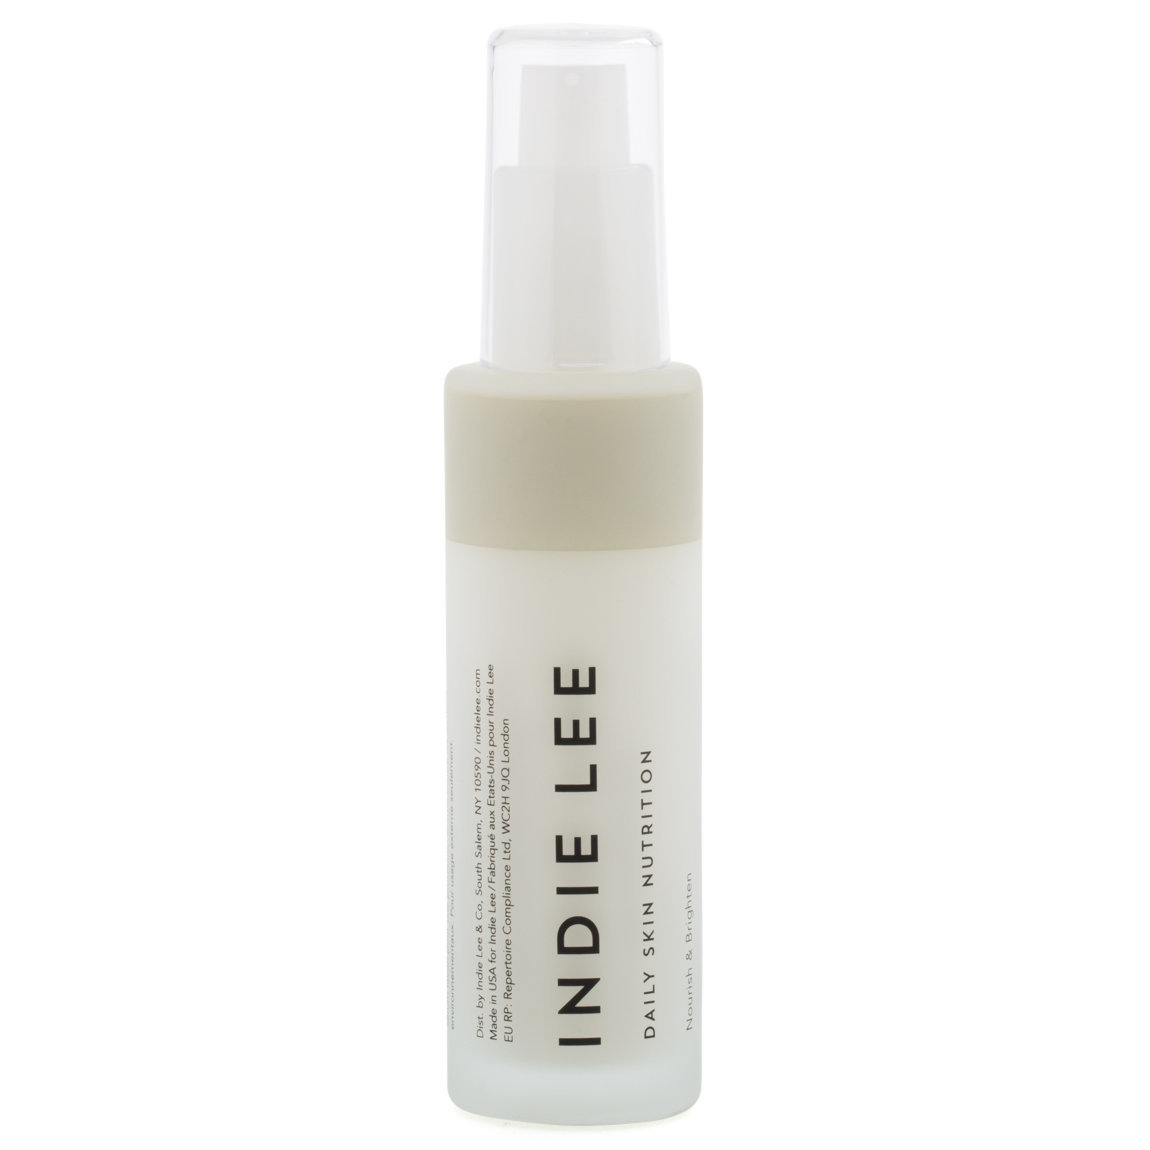 Indie Lee Daily Skin Nutrition 50 ml product swatch.